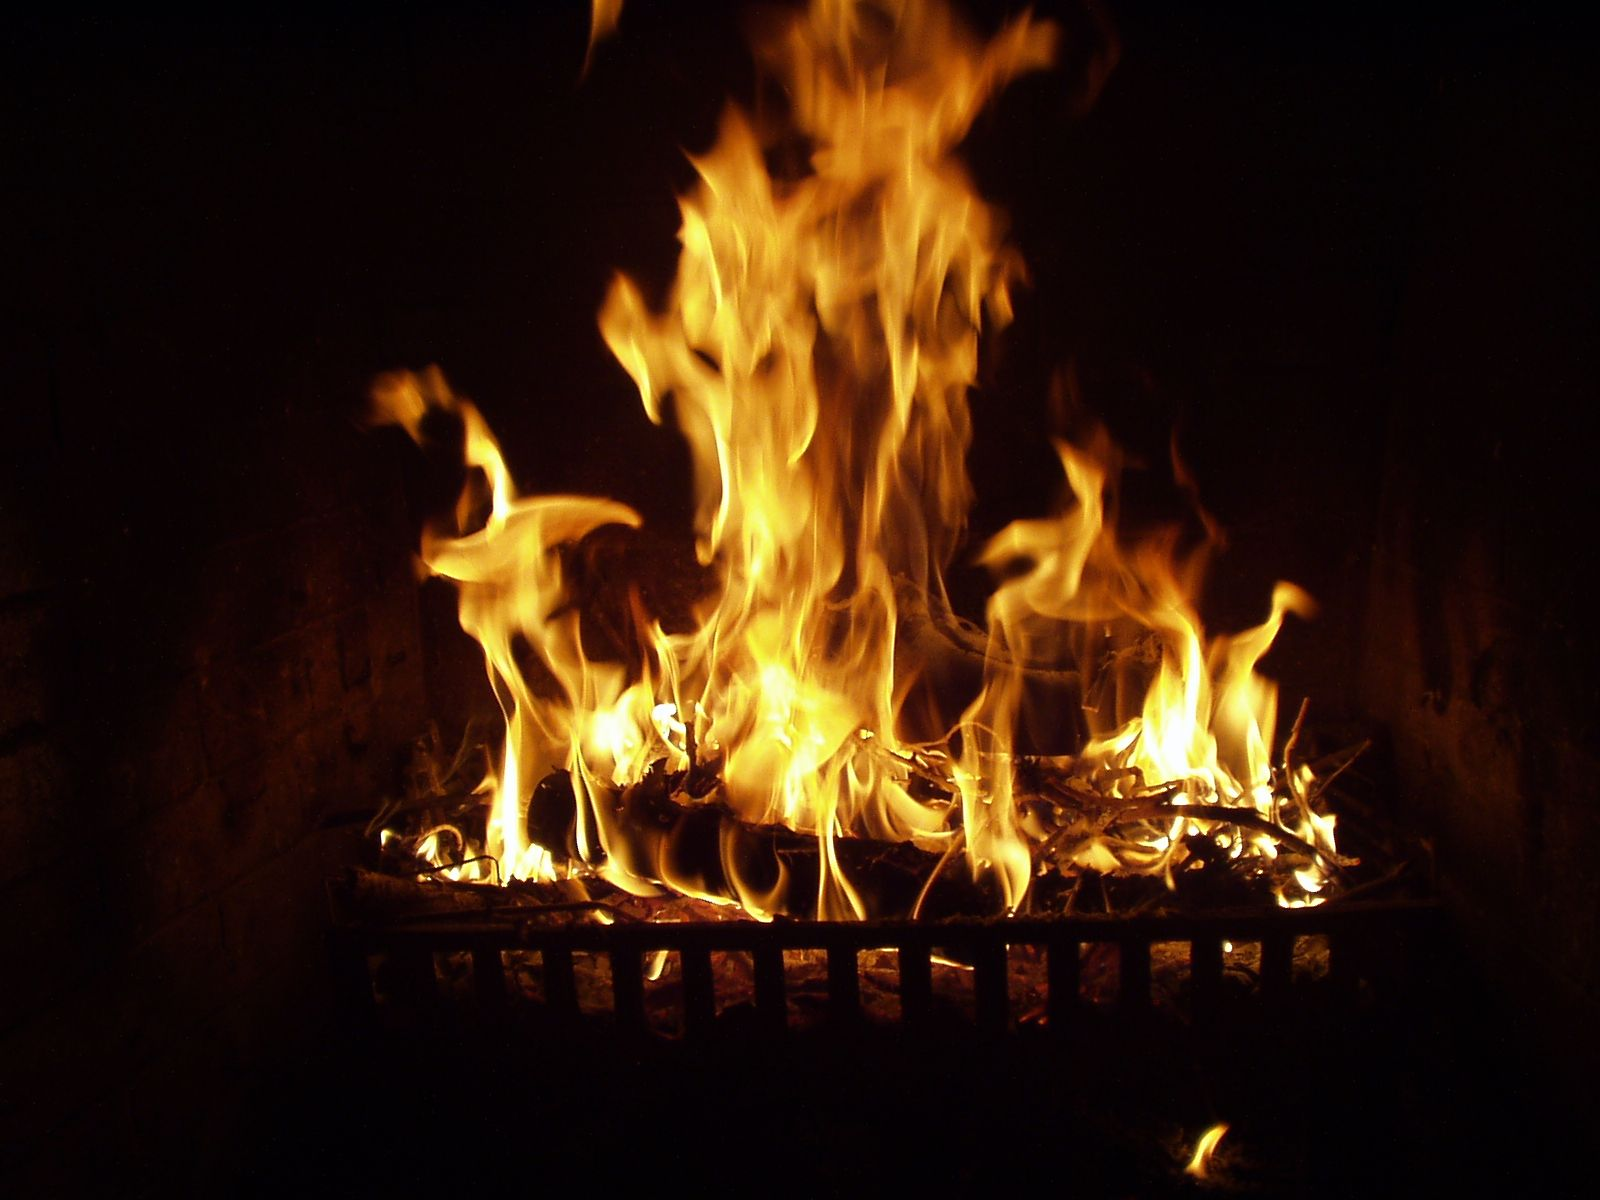 wallpaper.wiki-Fireplace-Wallpapers-HD-PIC-WPE008675